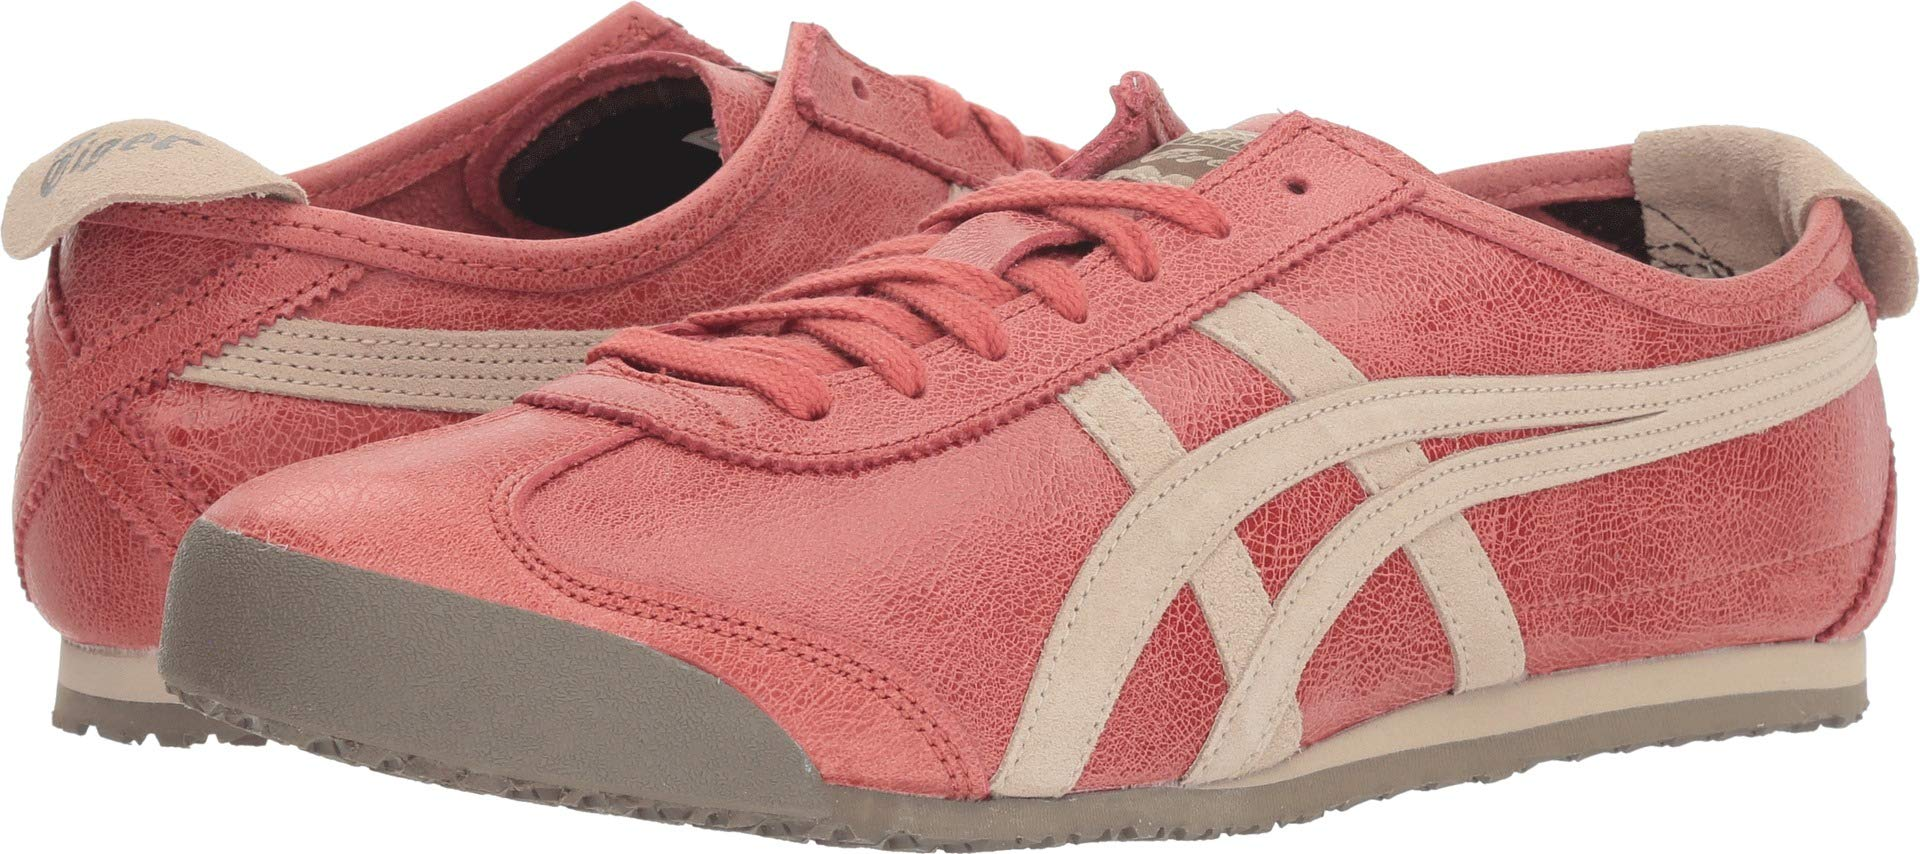 buy online 3f6ce 4fef3 Onitsuka Tiger Unisex Mexico 66¿ Red Brick/Feather Grey 12 Women / 10.5 Men  M US -